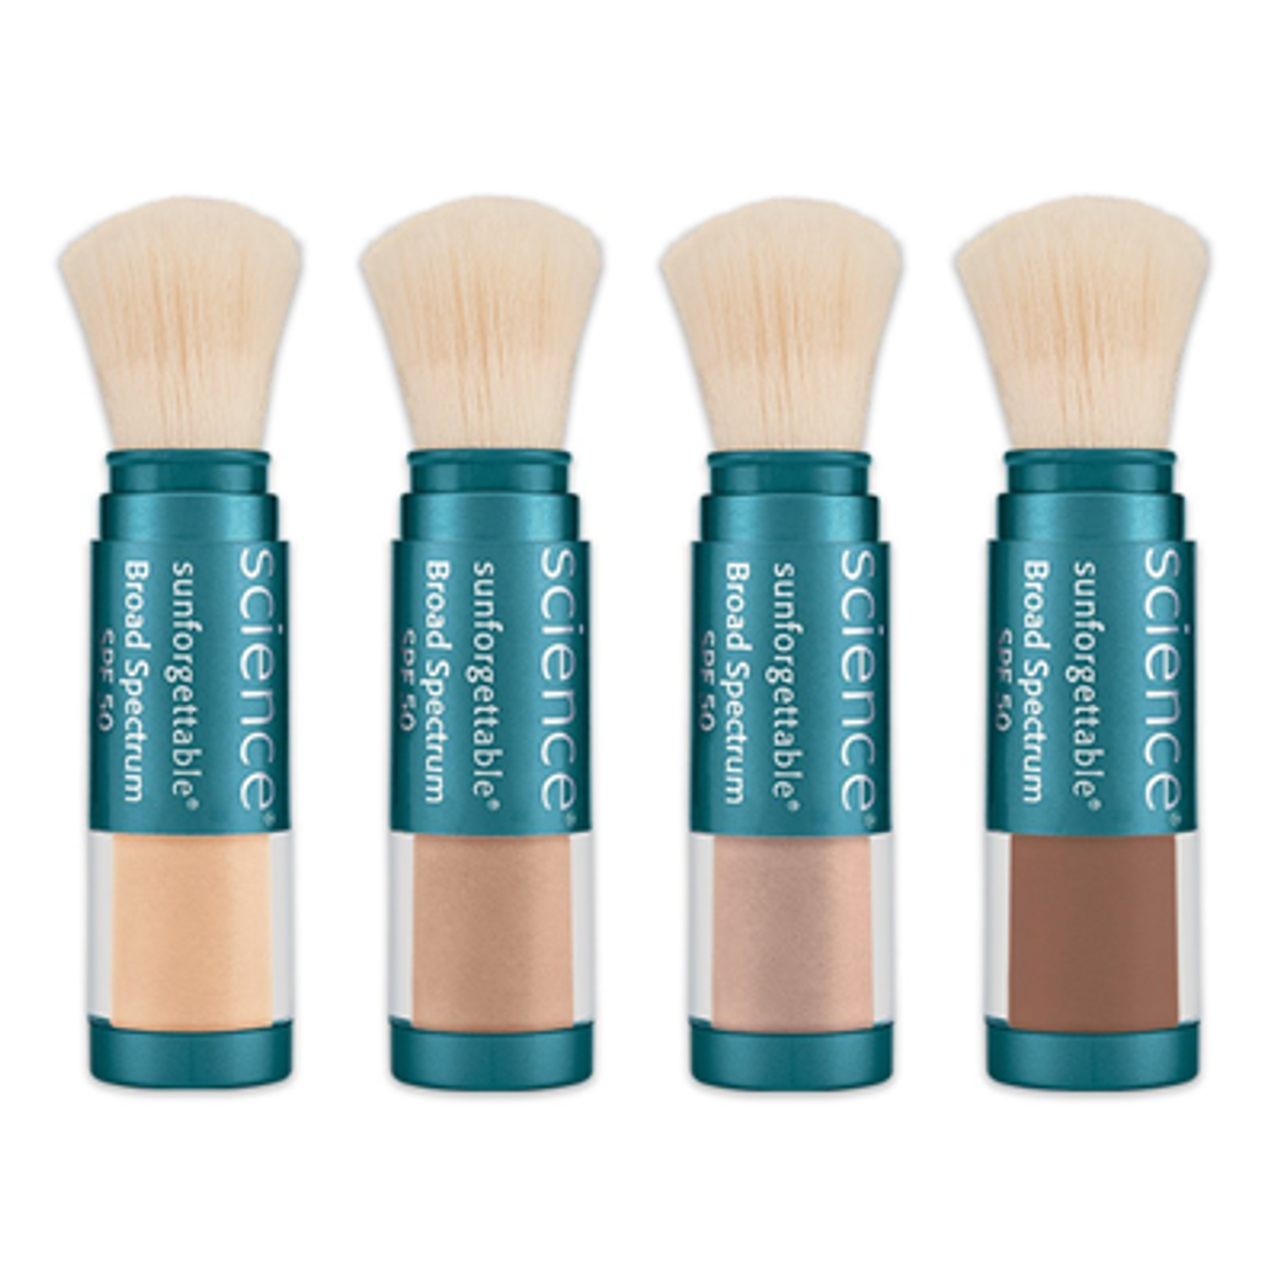 Sunforgettable Total Protection Brush SPF50